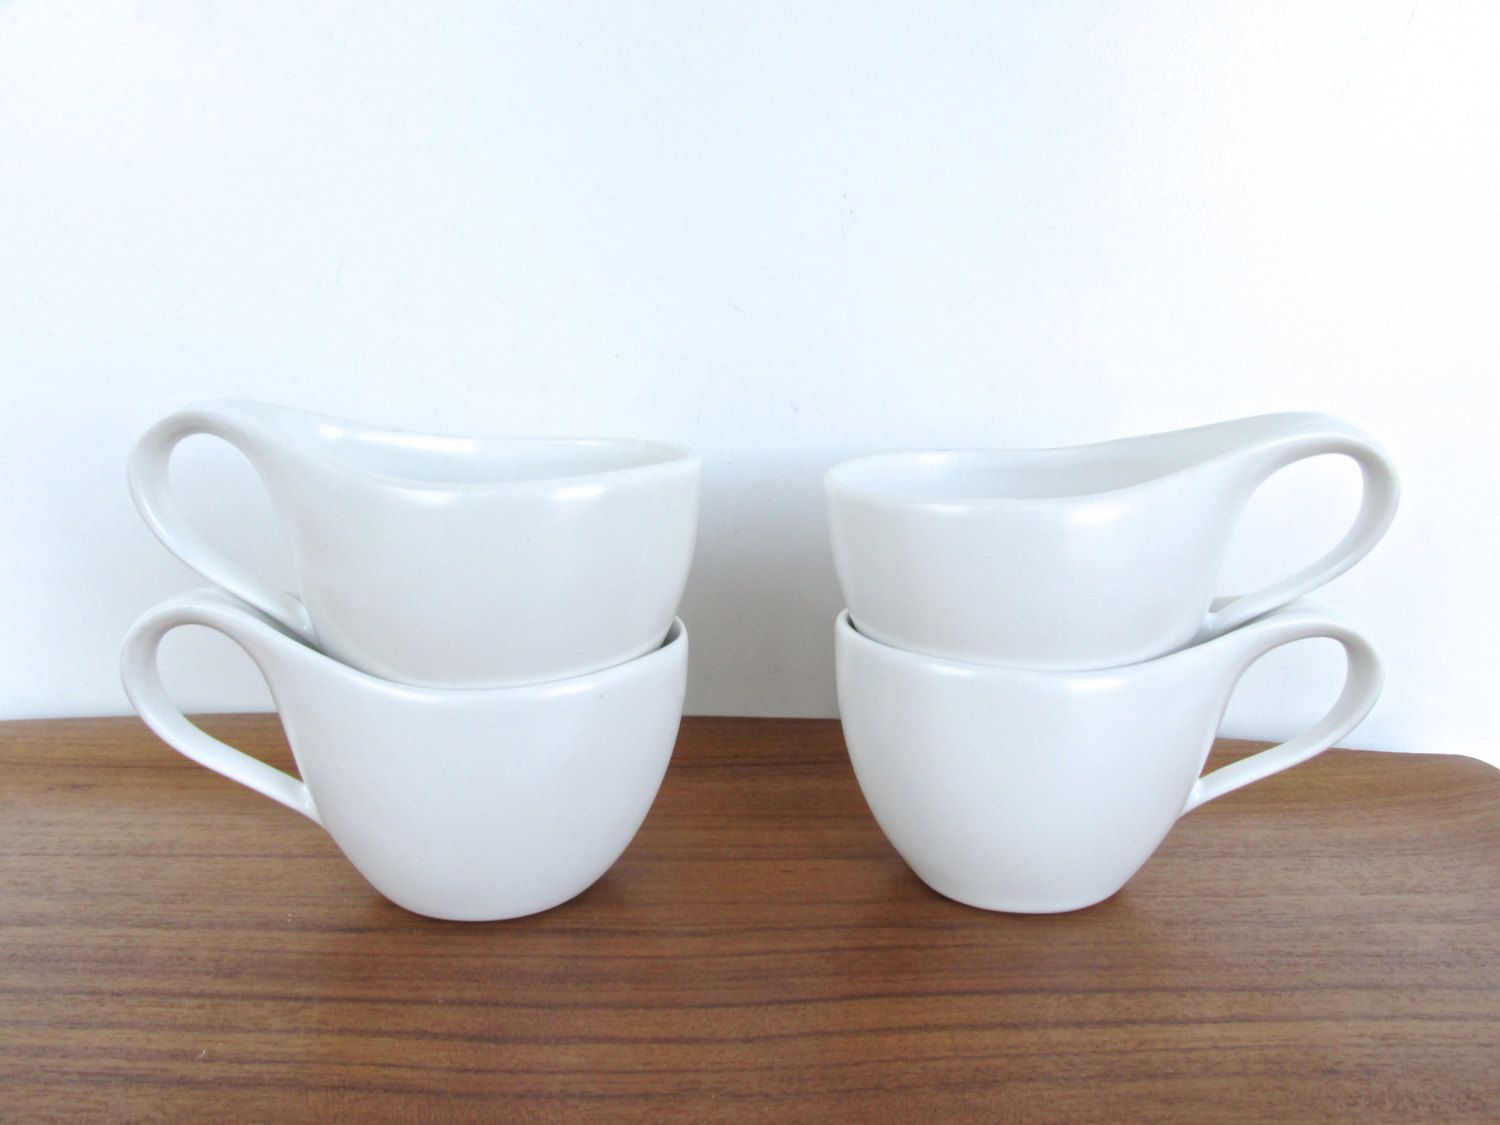 modern mugs modern mugs aeaeea modern mugs - set of modern white porcelain cups sculptural coffee cup